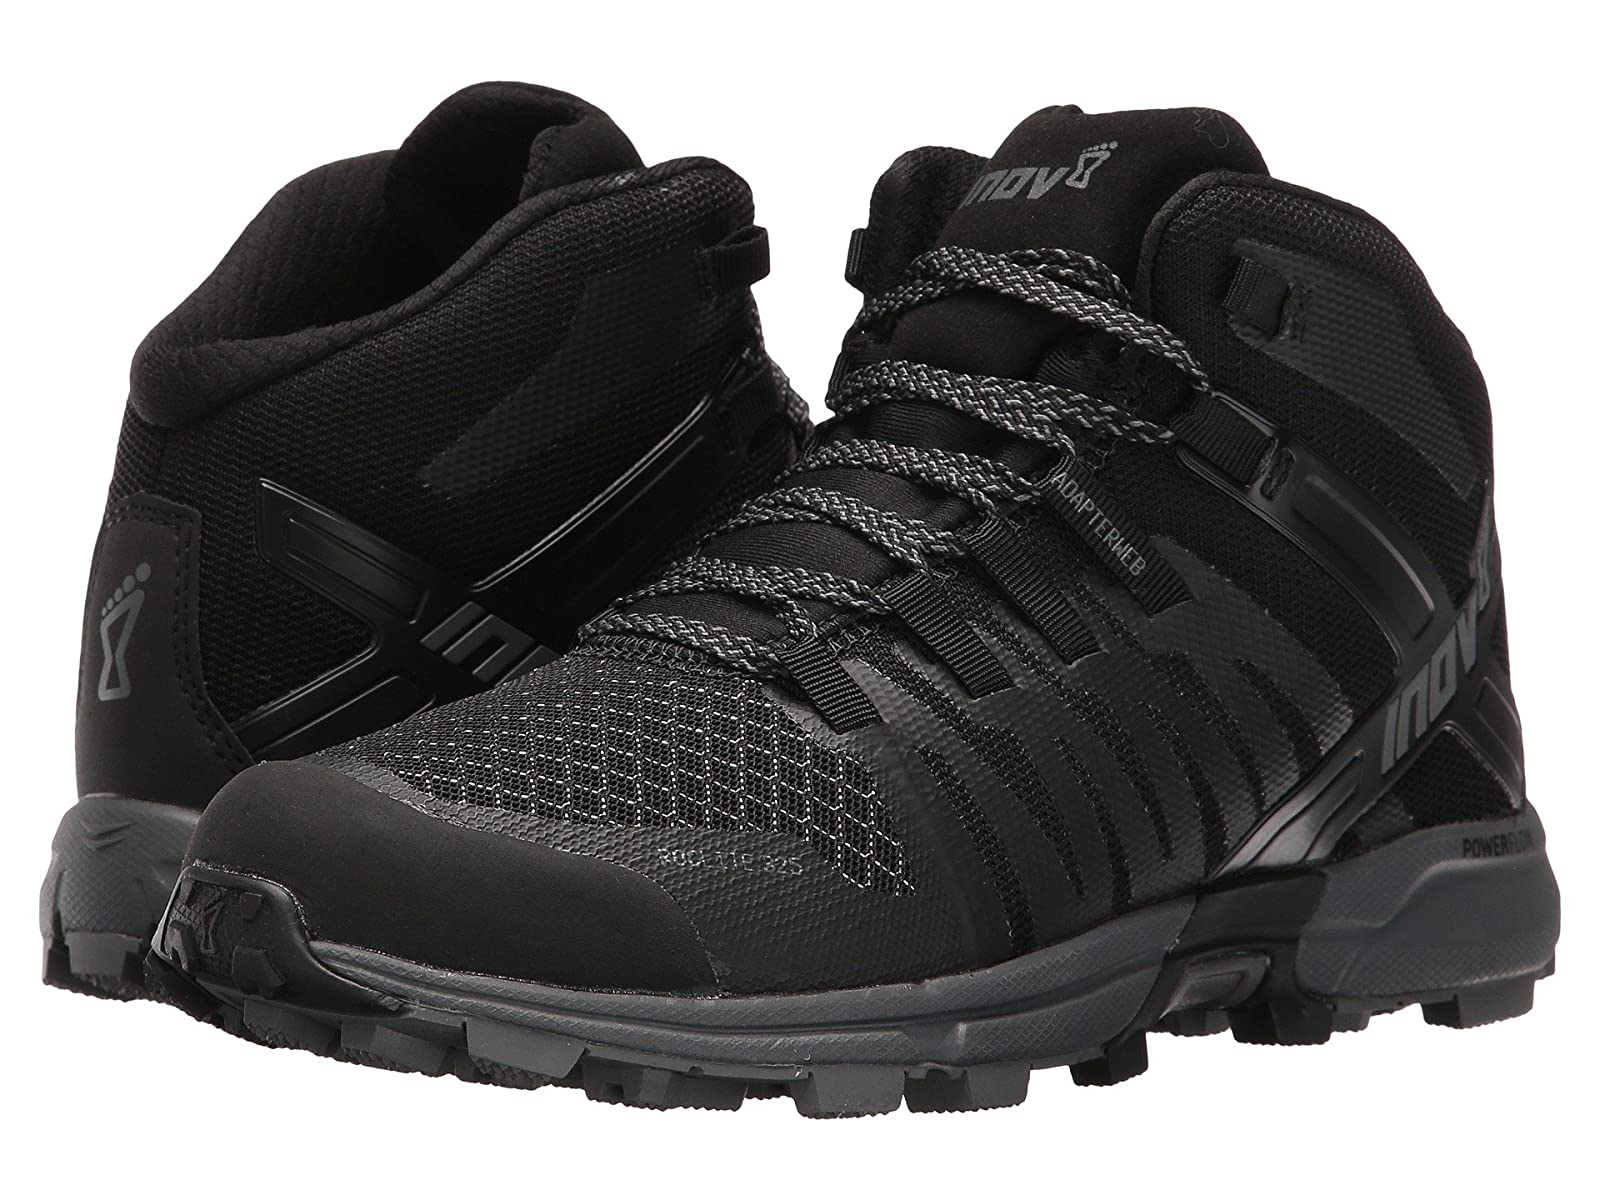 inov-8 Roclite 325Atmospheric grades have affordable shoes